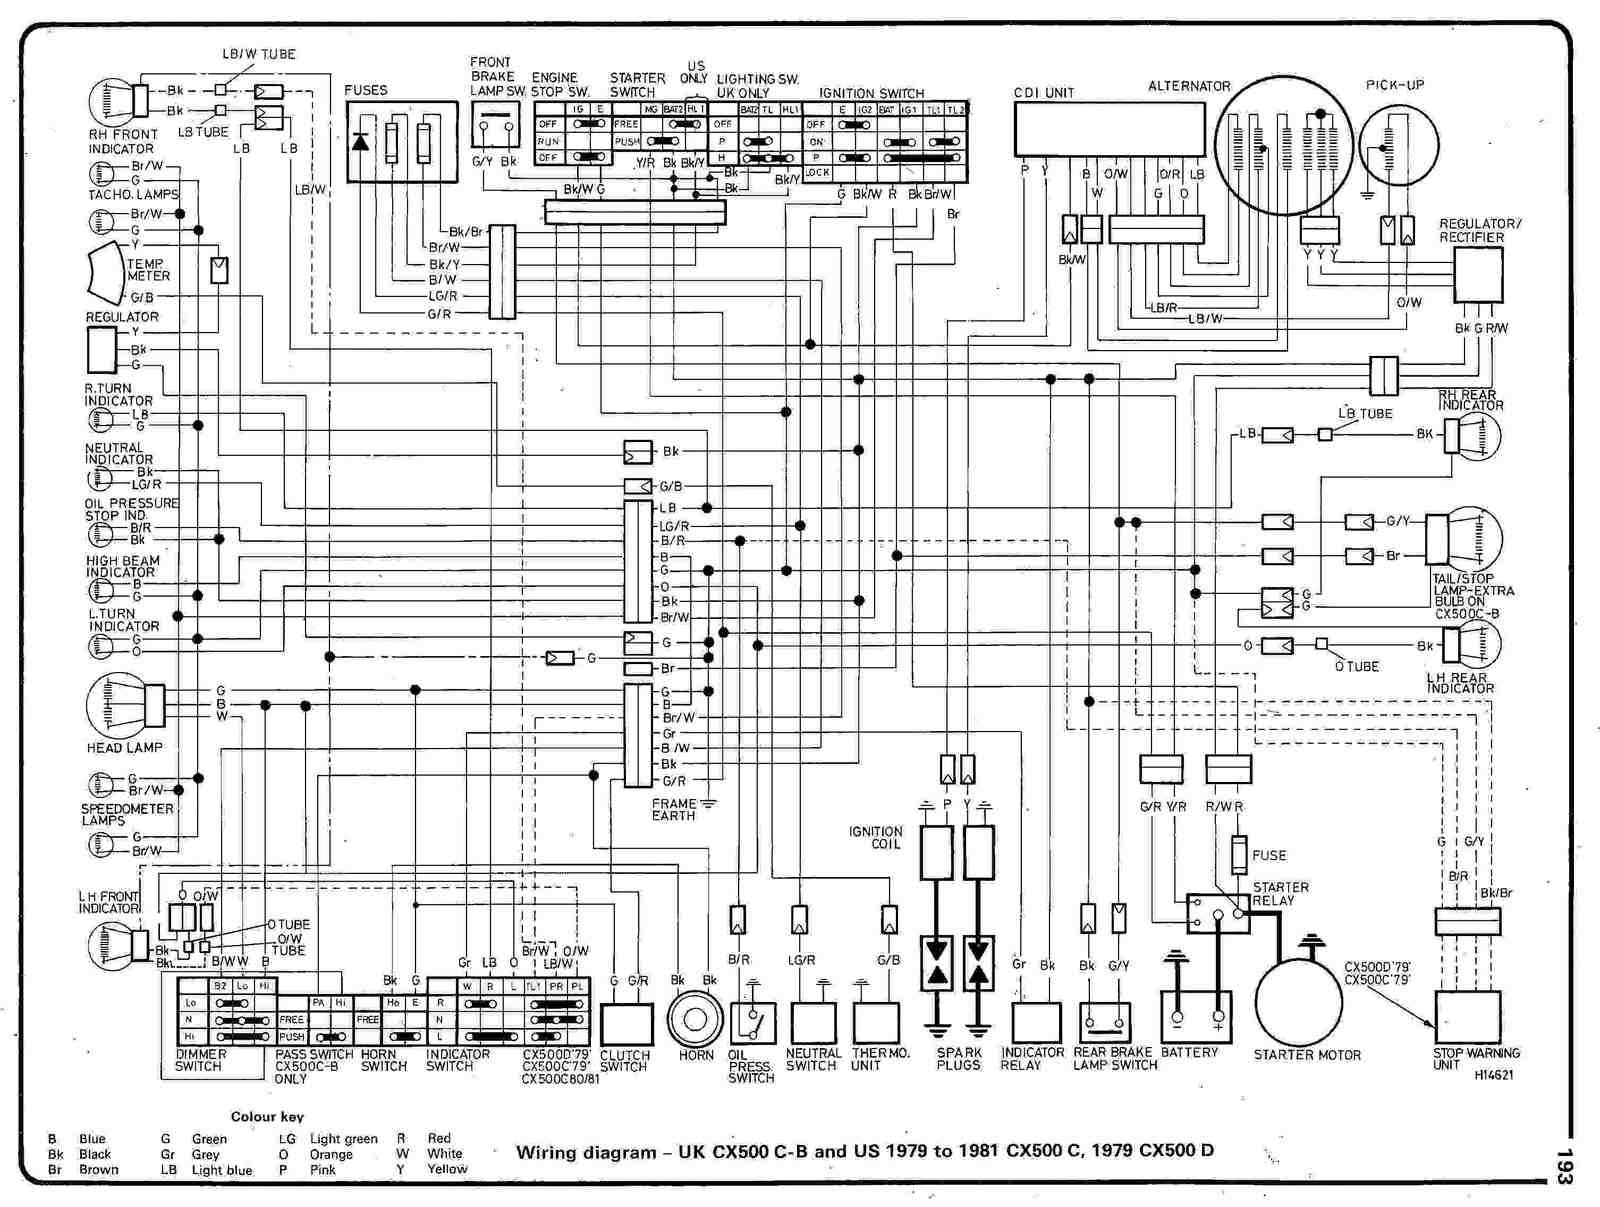 Gl1800 Cb Wiring Diagram - Wiring Diagram Data on cb360 wiring diagram, starter relay wiring diagram, gl1200 wiring diagram, cb750 wiring diagram, crf450r wiring diagram, goldwing wiring diagram, xr80 wiring diagram, cx500 wiring diagram, cb750k wiring diagram, cmx250c wiring diagram, honda wiring diagram, motorcycle wiring diagram, cr80 wiring diagram, crf250r wiring diagram, ct70 wiring diagram, crf250x wiring diagram, gl1100 wiring diagram, starter circuit wiring diagram, xr650l wiring diagram, st1300 wiring diagram,